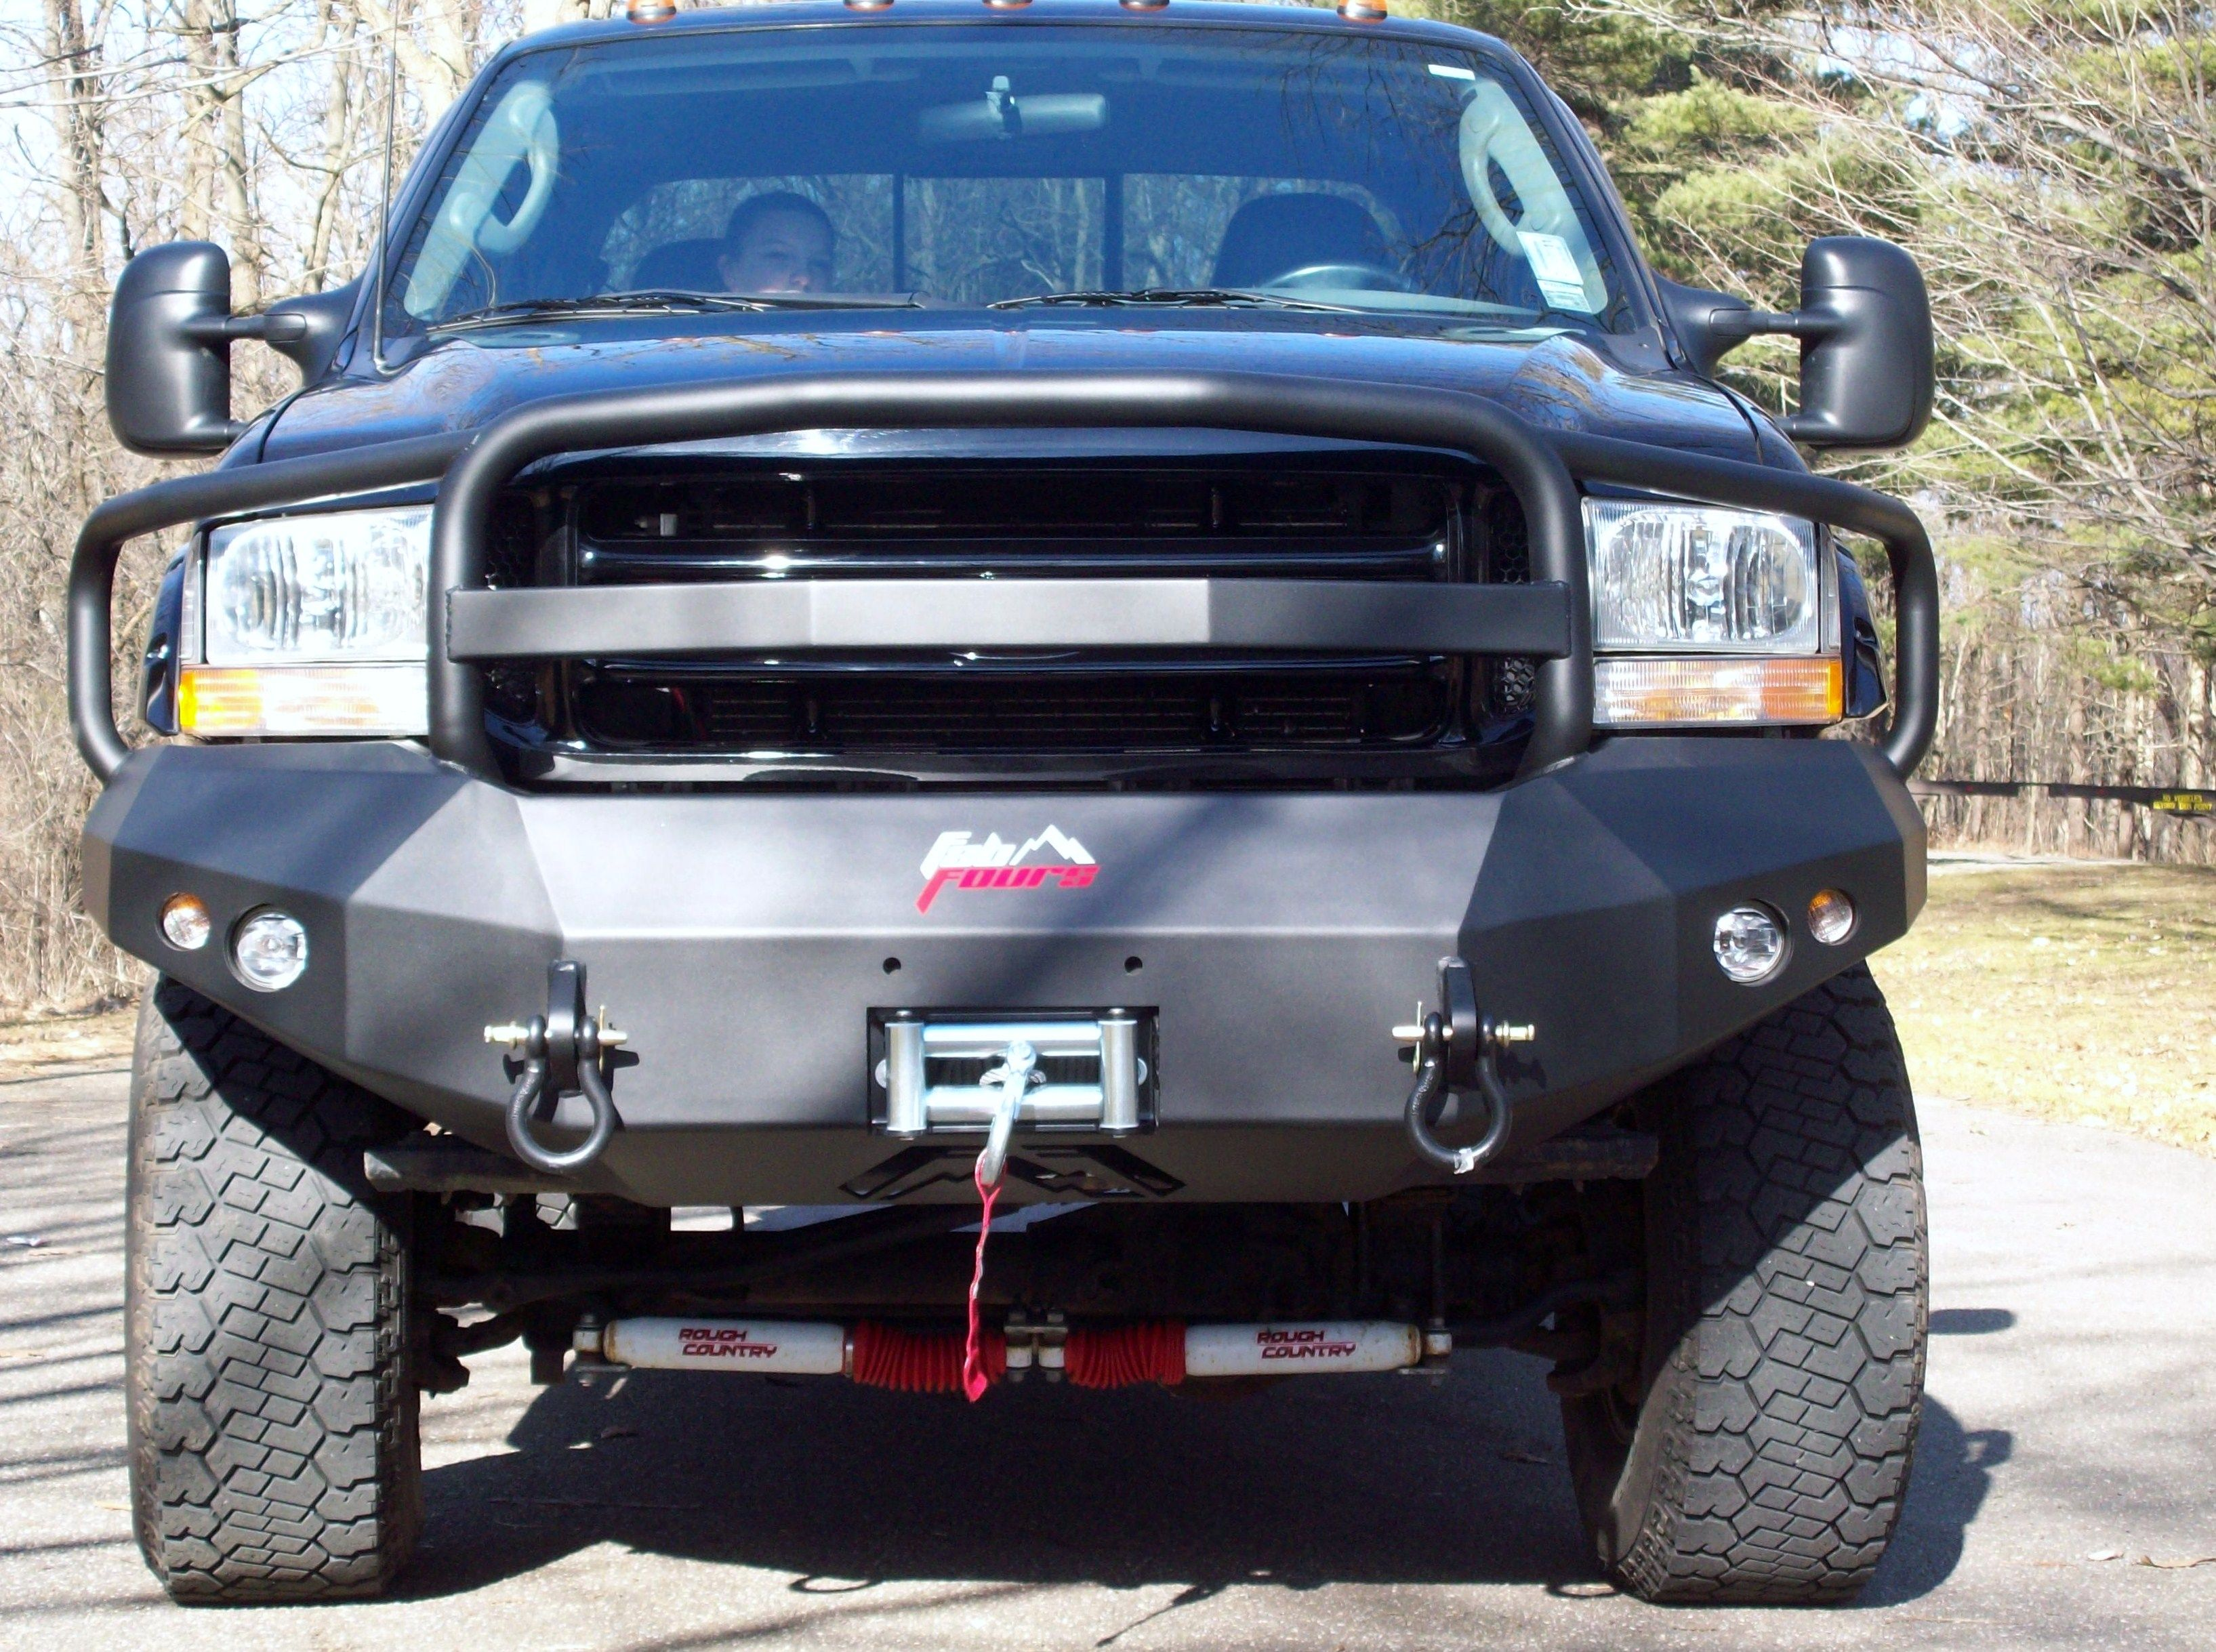 Fab fours heavy duty winch bumper front w full grill guard